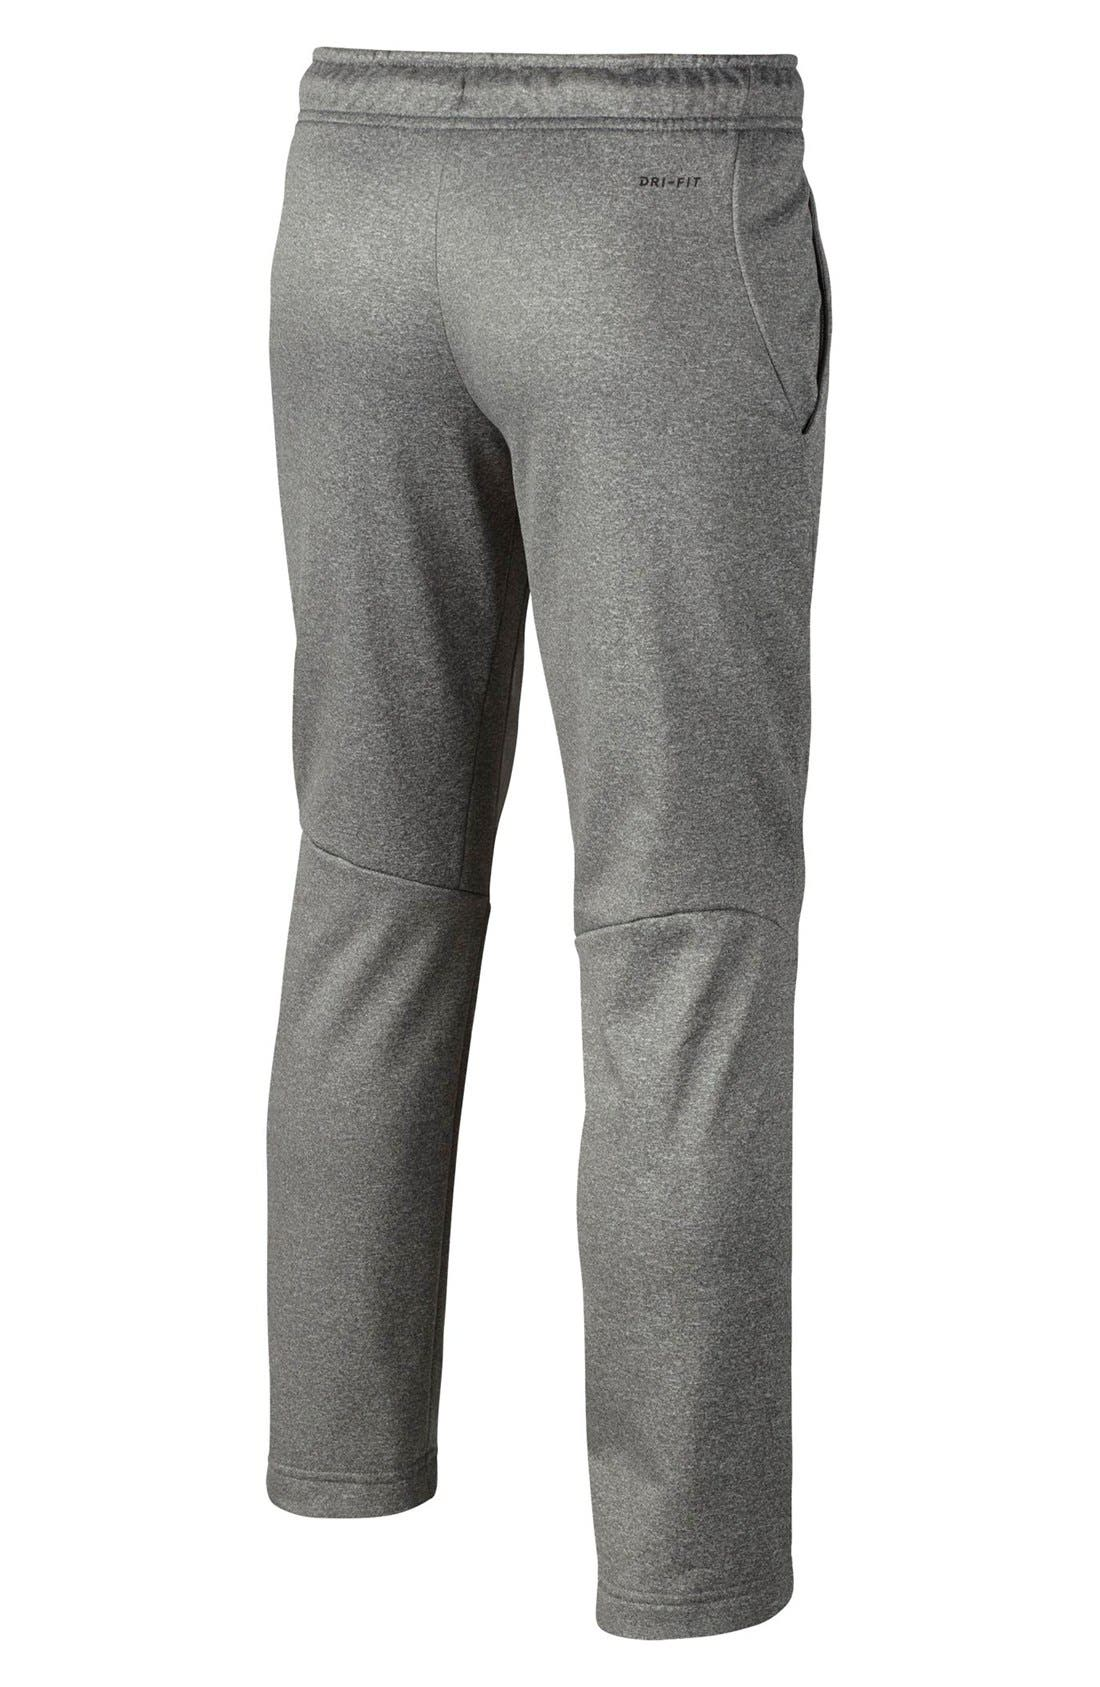 Therma-FIT Training Pants,                             Alternate thumbnail 20, color,